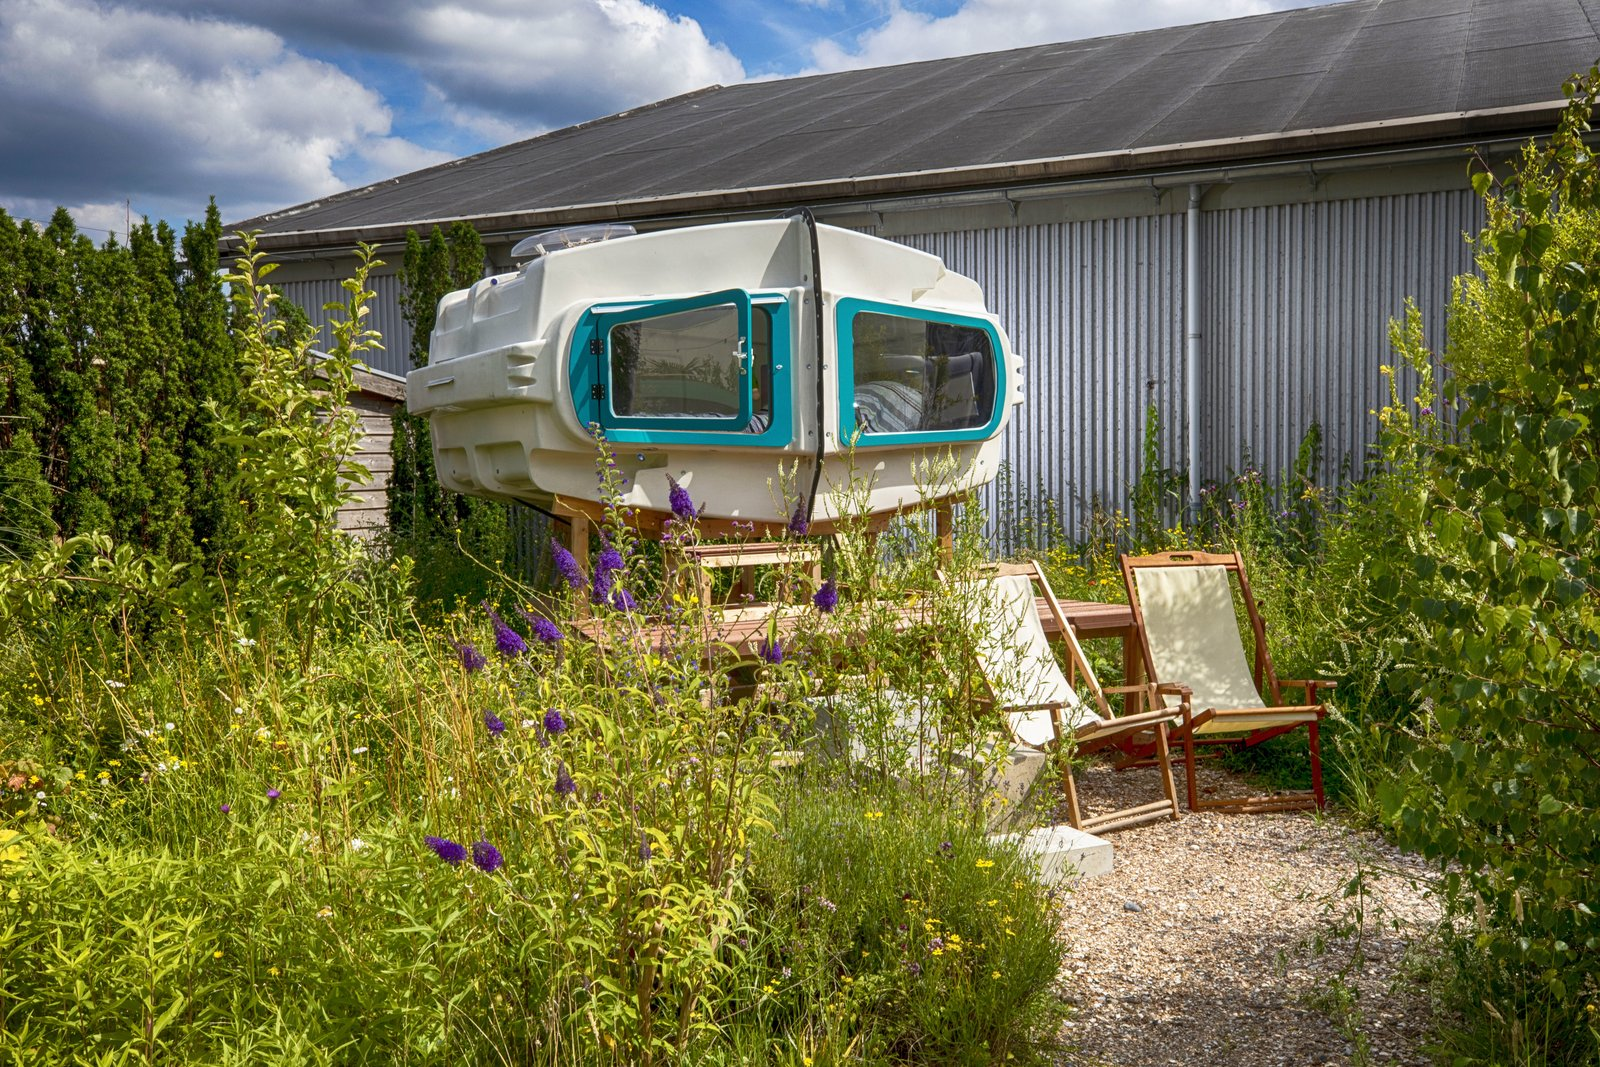 Exterior and Cabin Building Type Scuba, a sleeping pod made out of two joined calf igloos, is one of Culture Campsite's latest additions.  Photo 7 of 15 in At This Quirky Campsite in Rotterdam, You'll Sleep in Upcycled Grain Silos and Calf Igloos from Culture Campsite Rotterdam